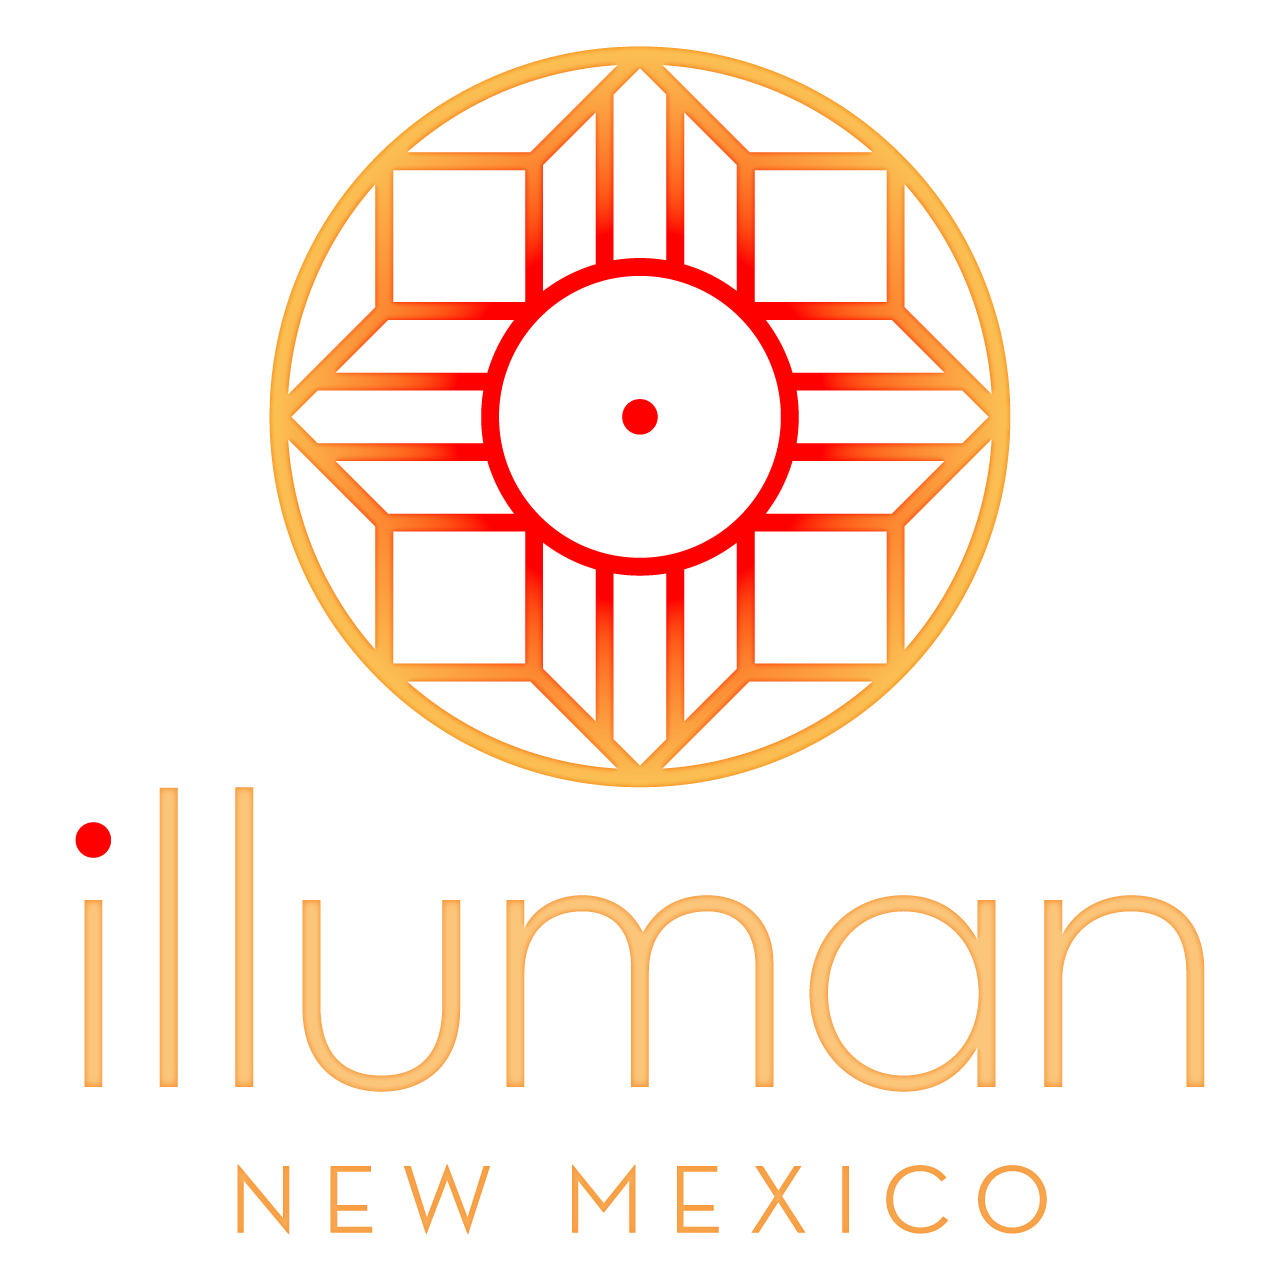 Illuman New Mexico